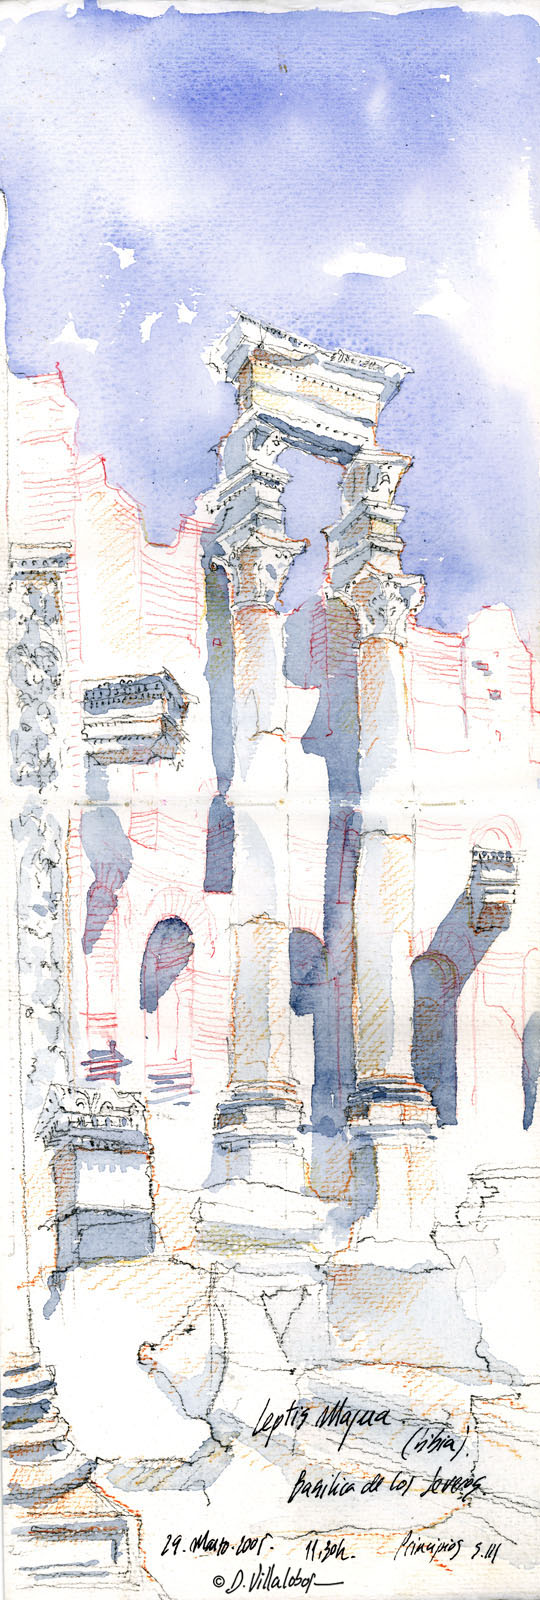 danielvillalobos-architecture-sketchbook-sketch-libya-5